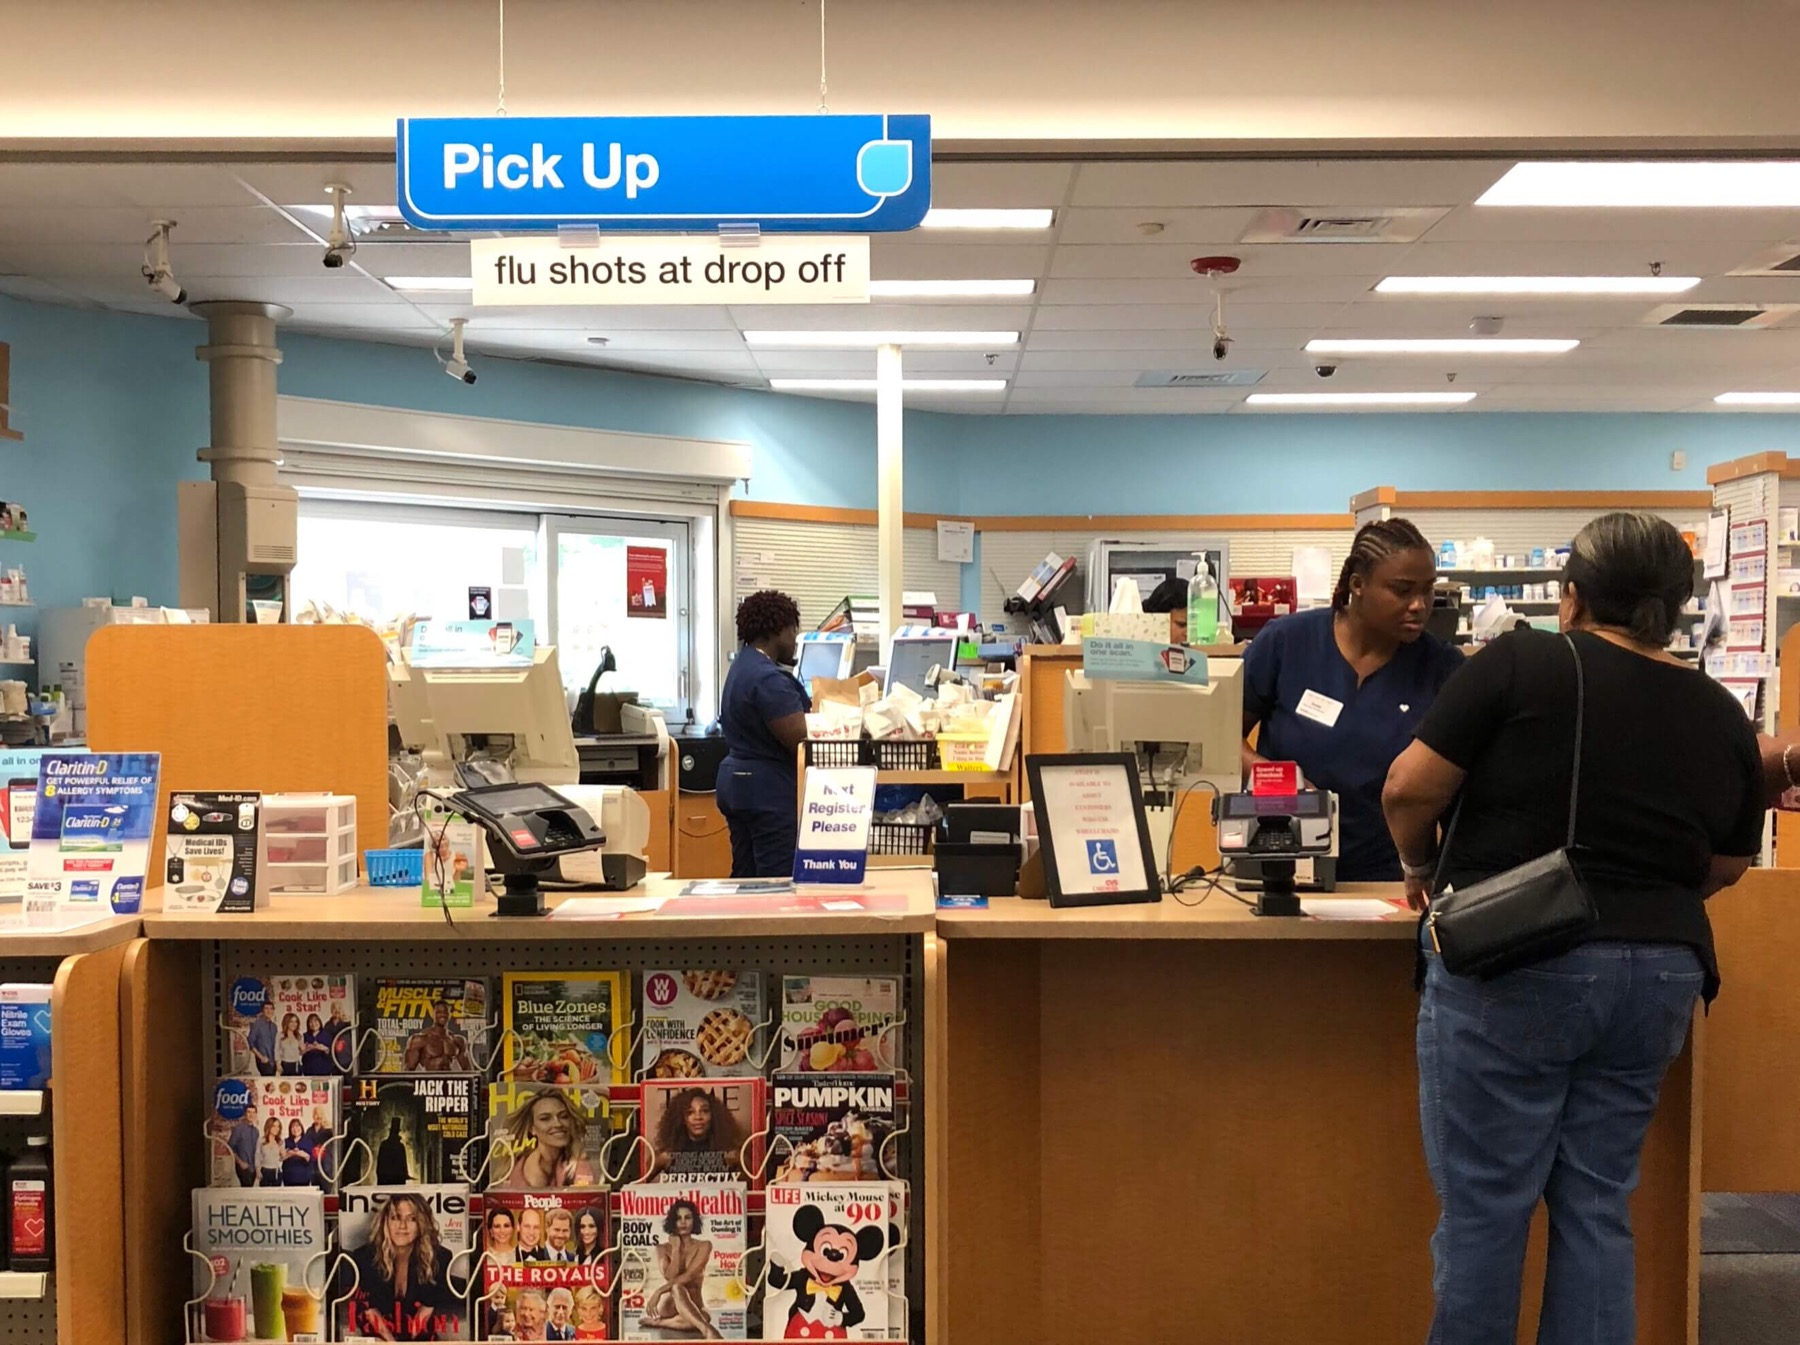 Pharmacist and customer interacting at a retail pharmacy